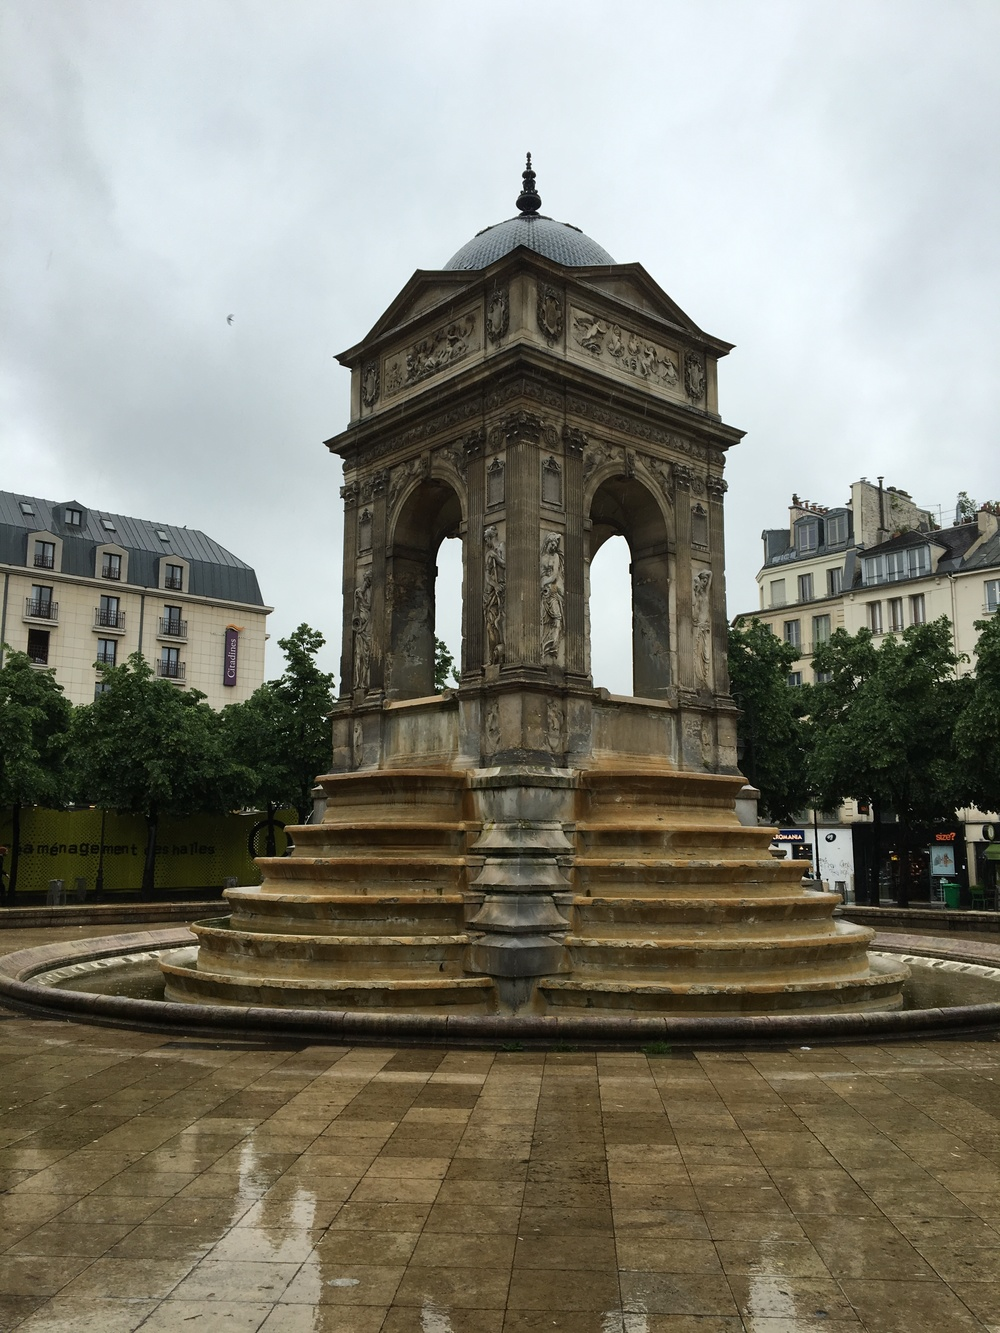 In Les Halles,  the last Renaissance fountain in the city- Les Fontaine des Innocents